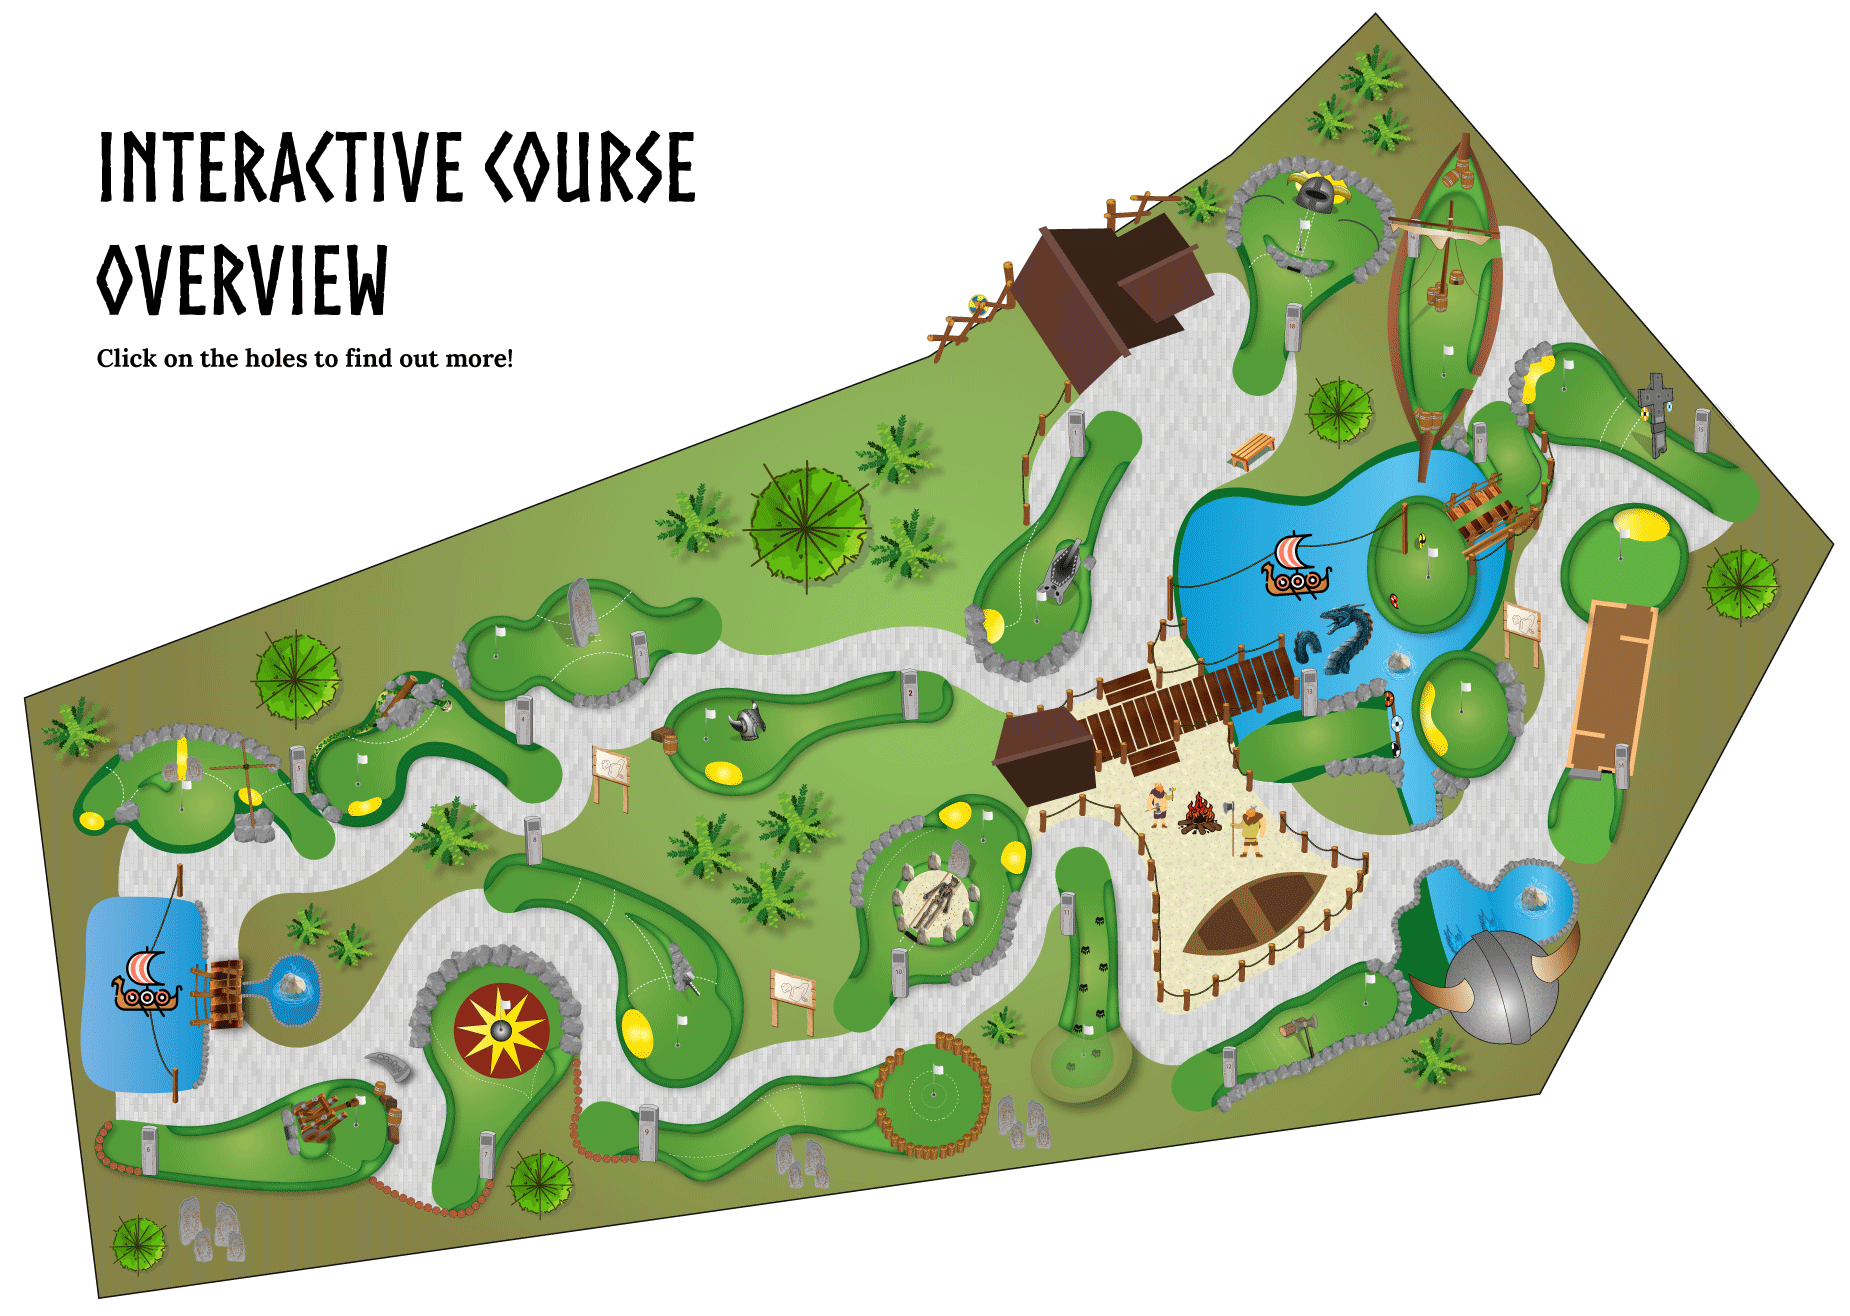 viking quest adventure golf moreton hills golf centre wirral merseyside mini